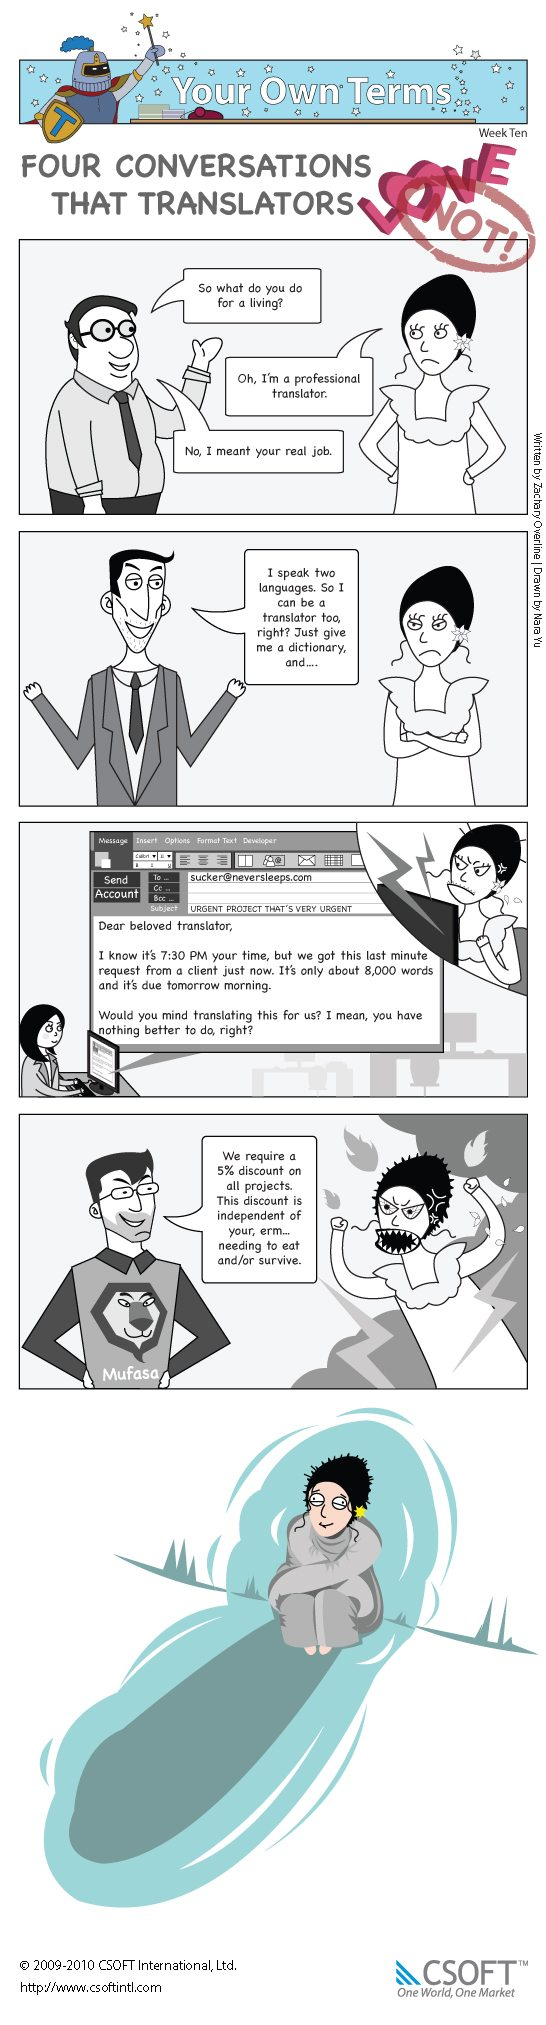 The tenth issue of Your Own Terms, the terminology management comic in which we explore four types of conversations that translators love to have. And by love, we mean hate.